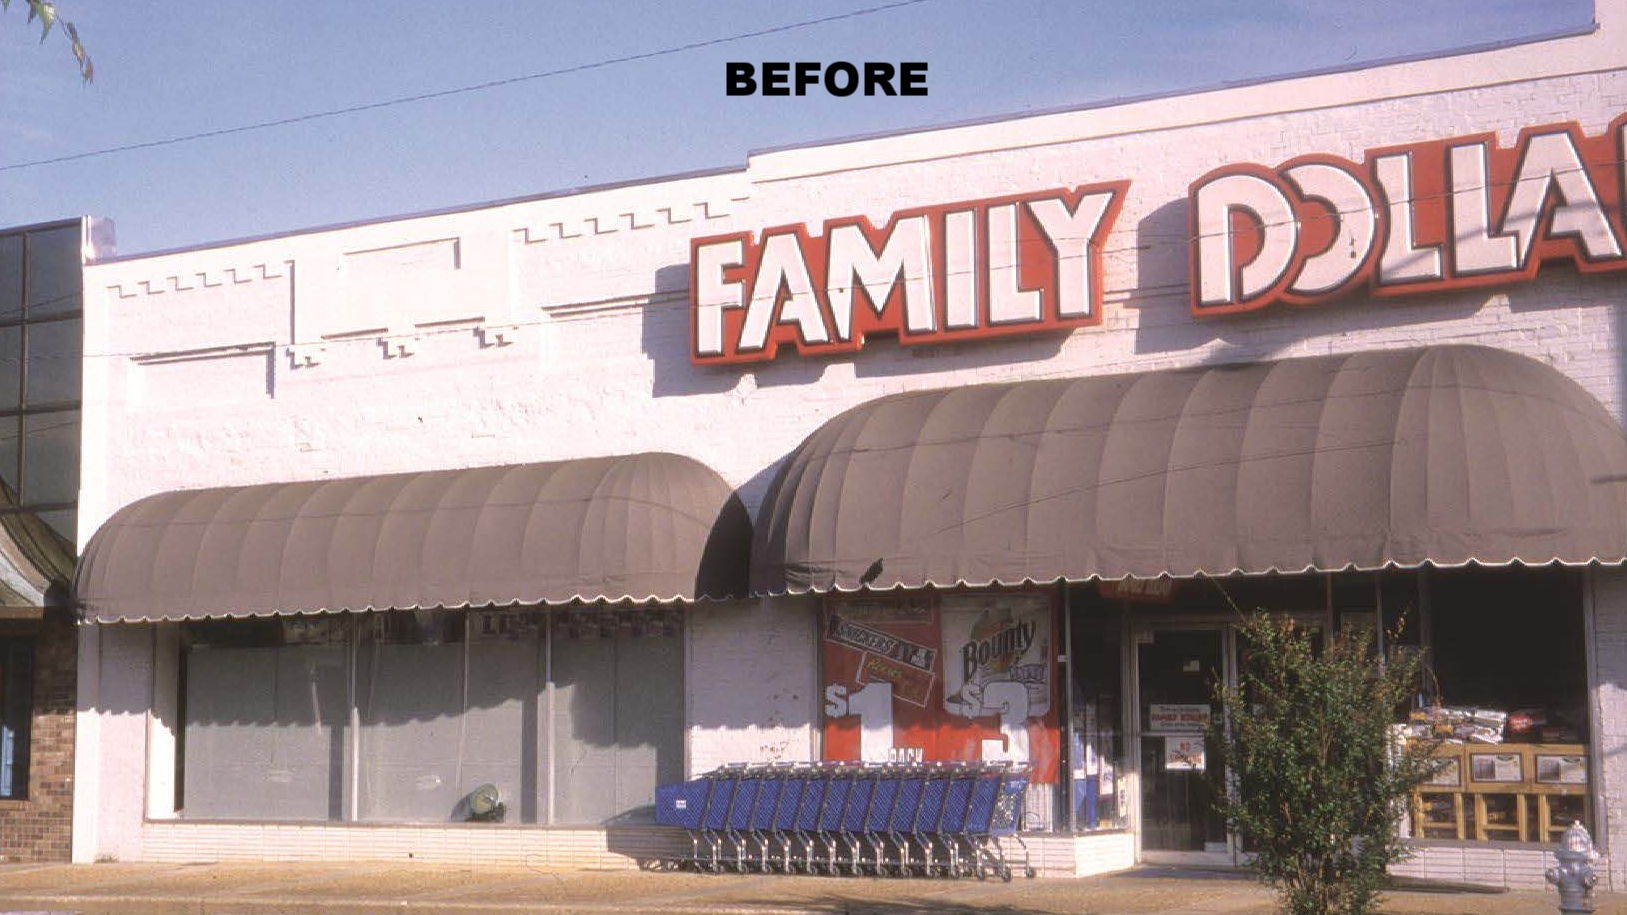 Family Dollar Anytime Fitness.jpg